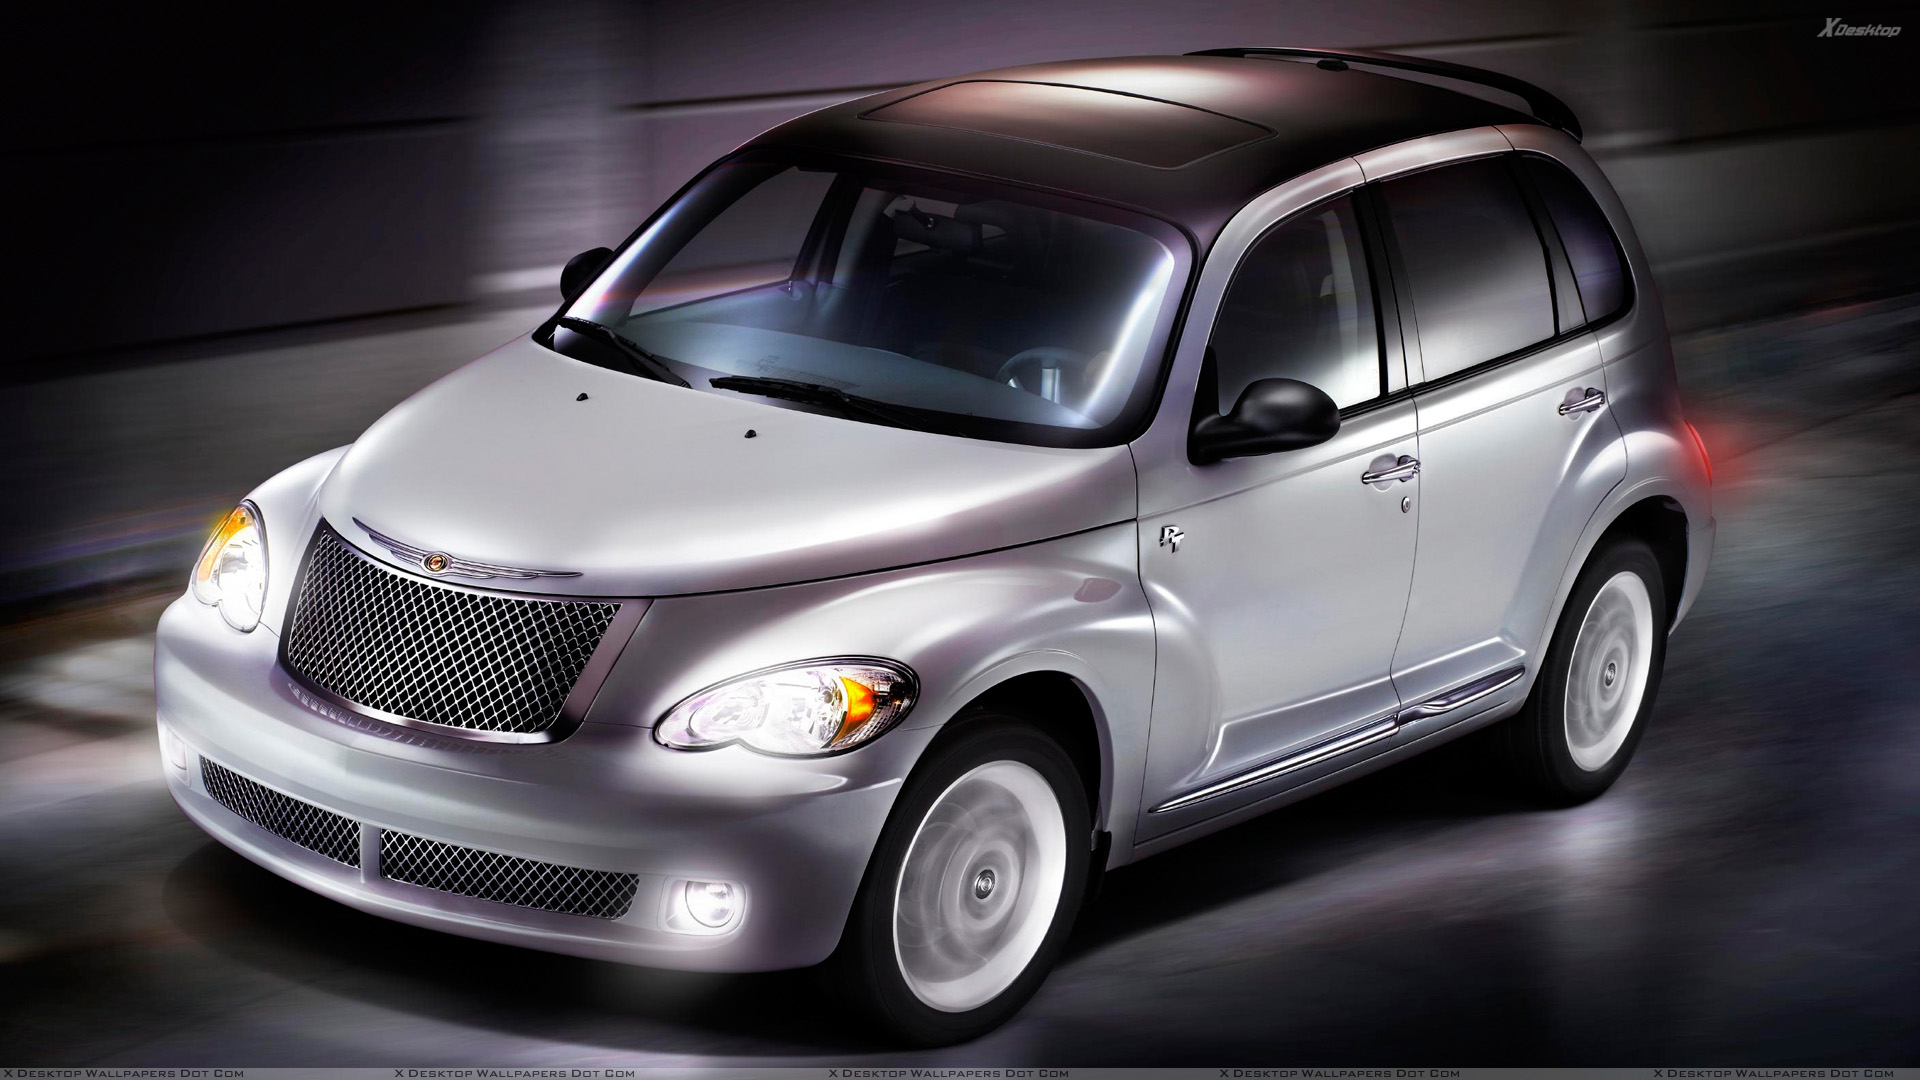 chrysler pt cruiser wallpapers photos images in hd. Black Bedroom Furniture Sets. Home Design Ideas